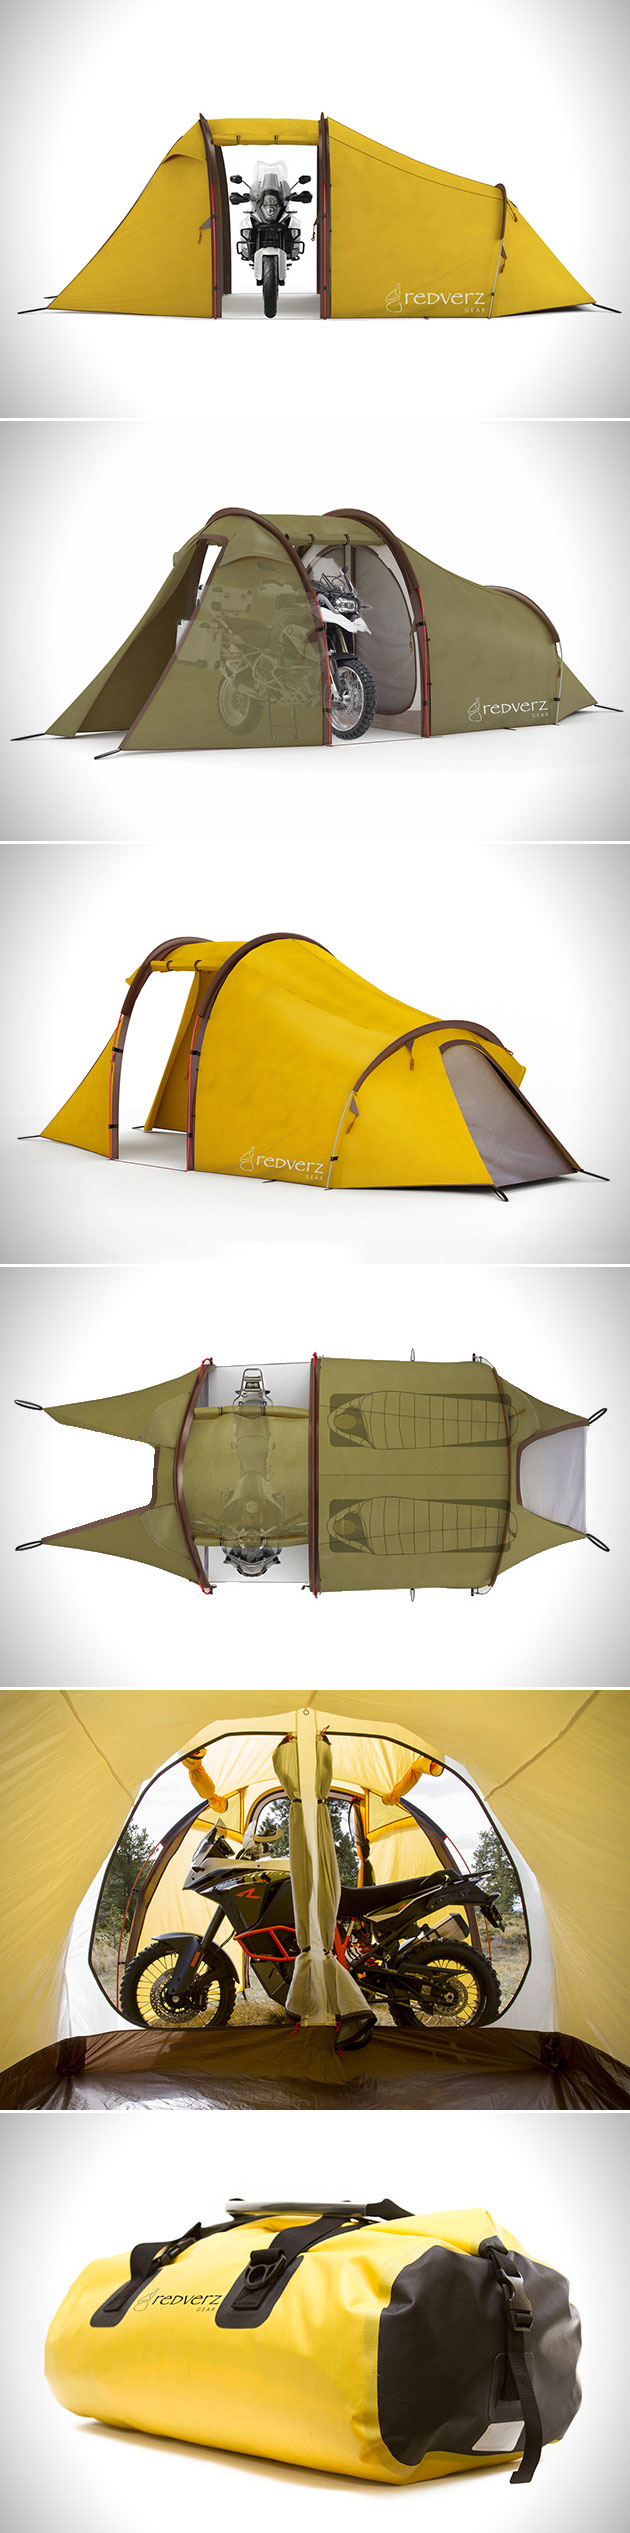 motorcycle-expedition-tent